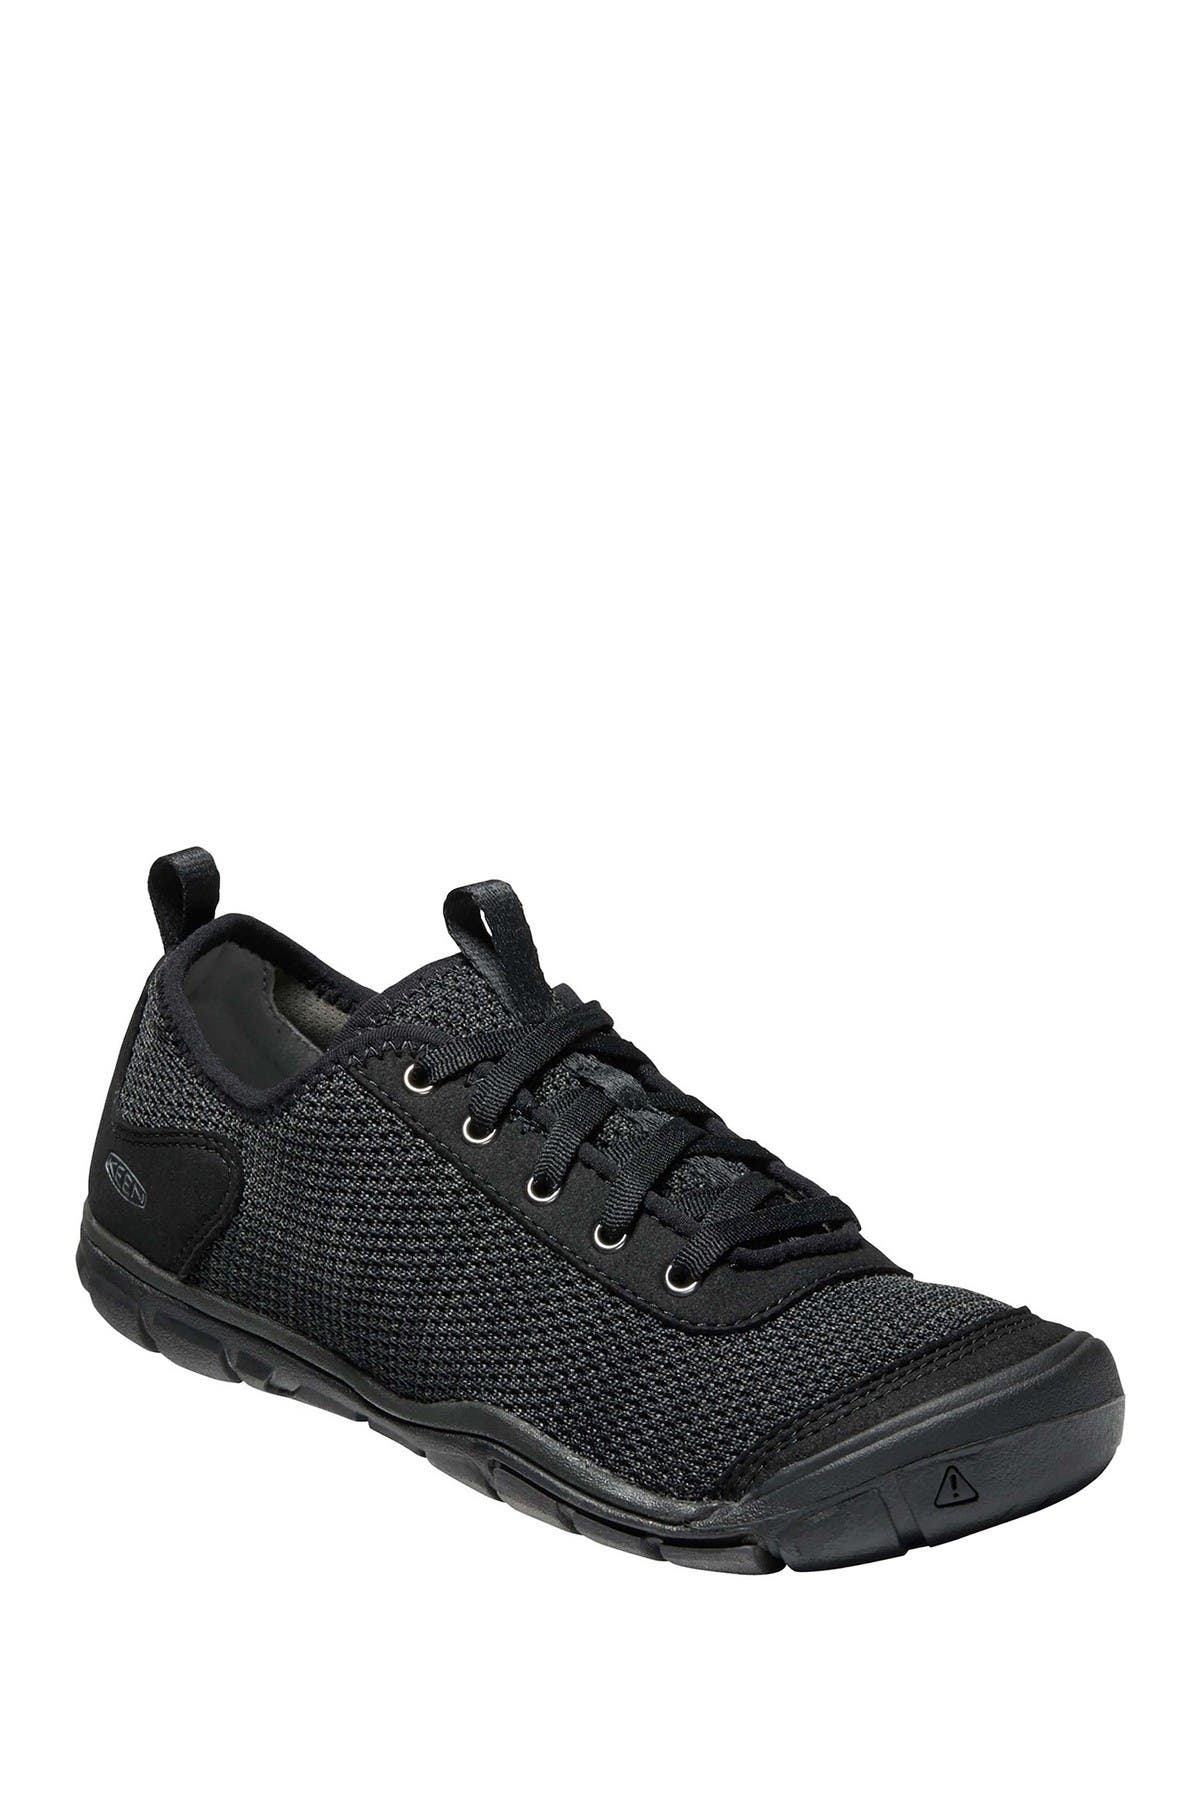 Image of Keen Hush Knit CNX Sneaker